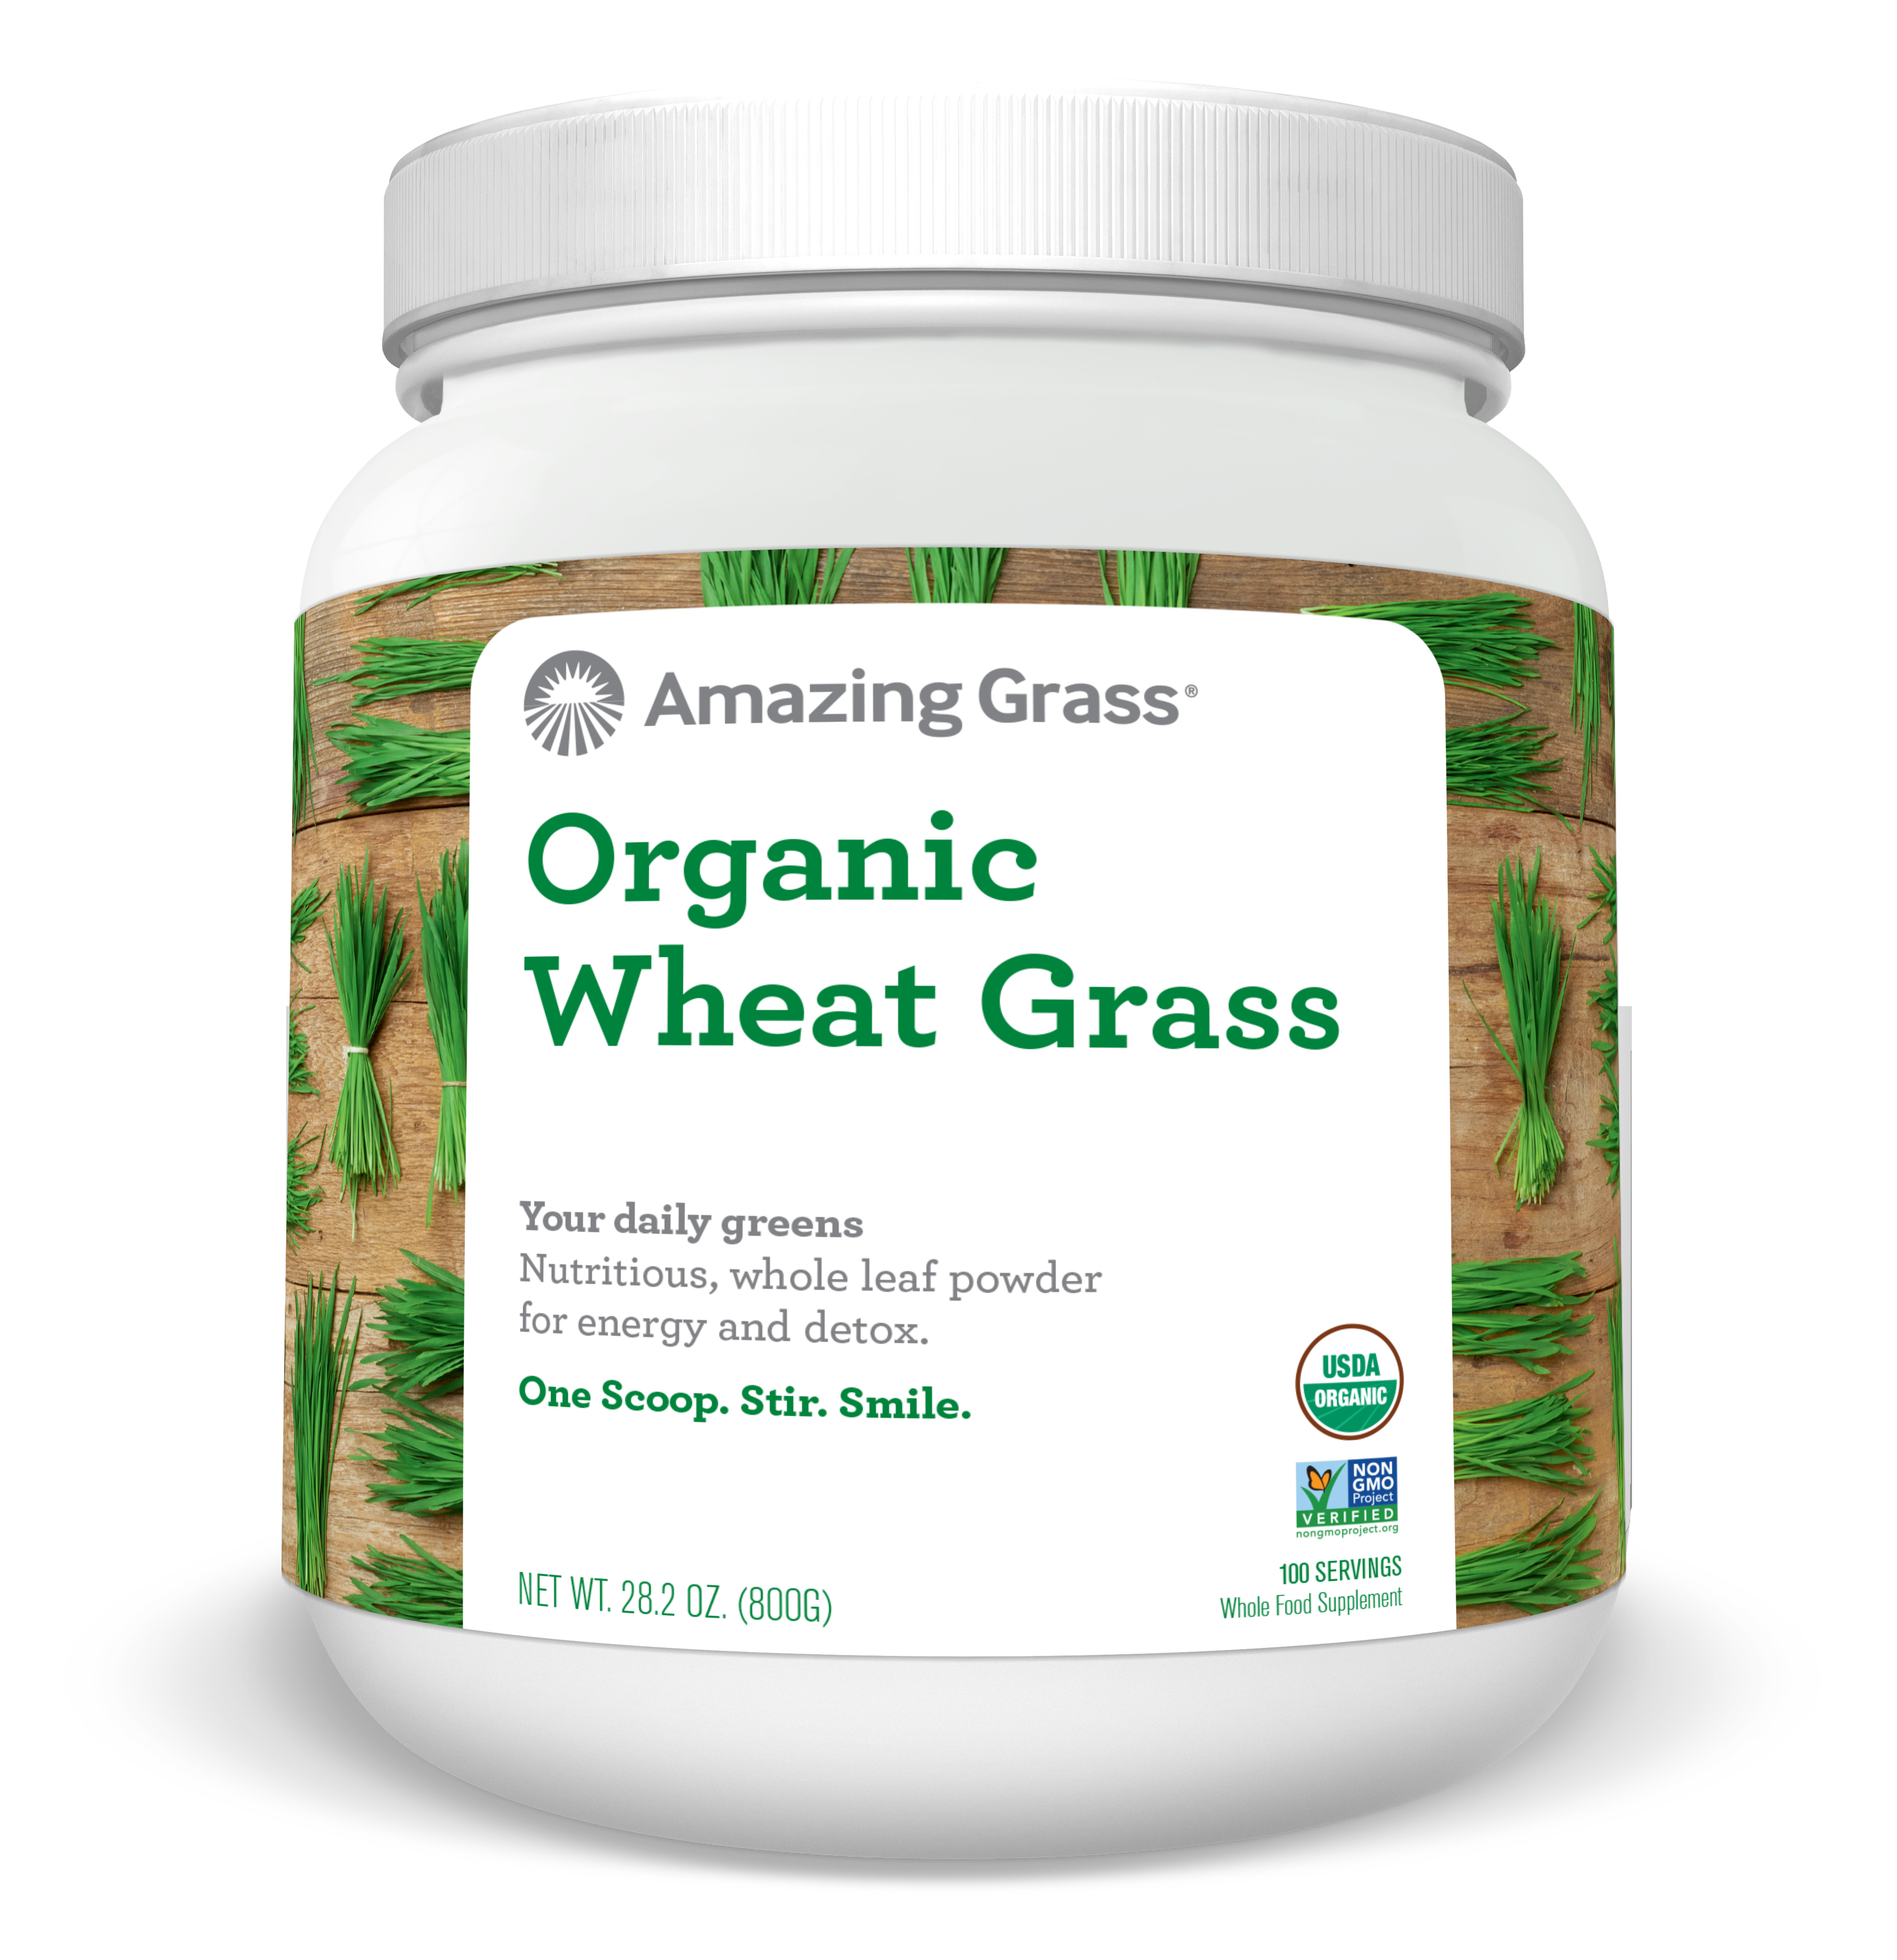 Amazing Grass Organic Wheatgrass Powder, 1.8 Lb